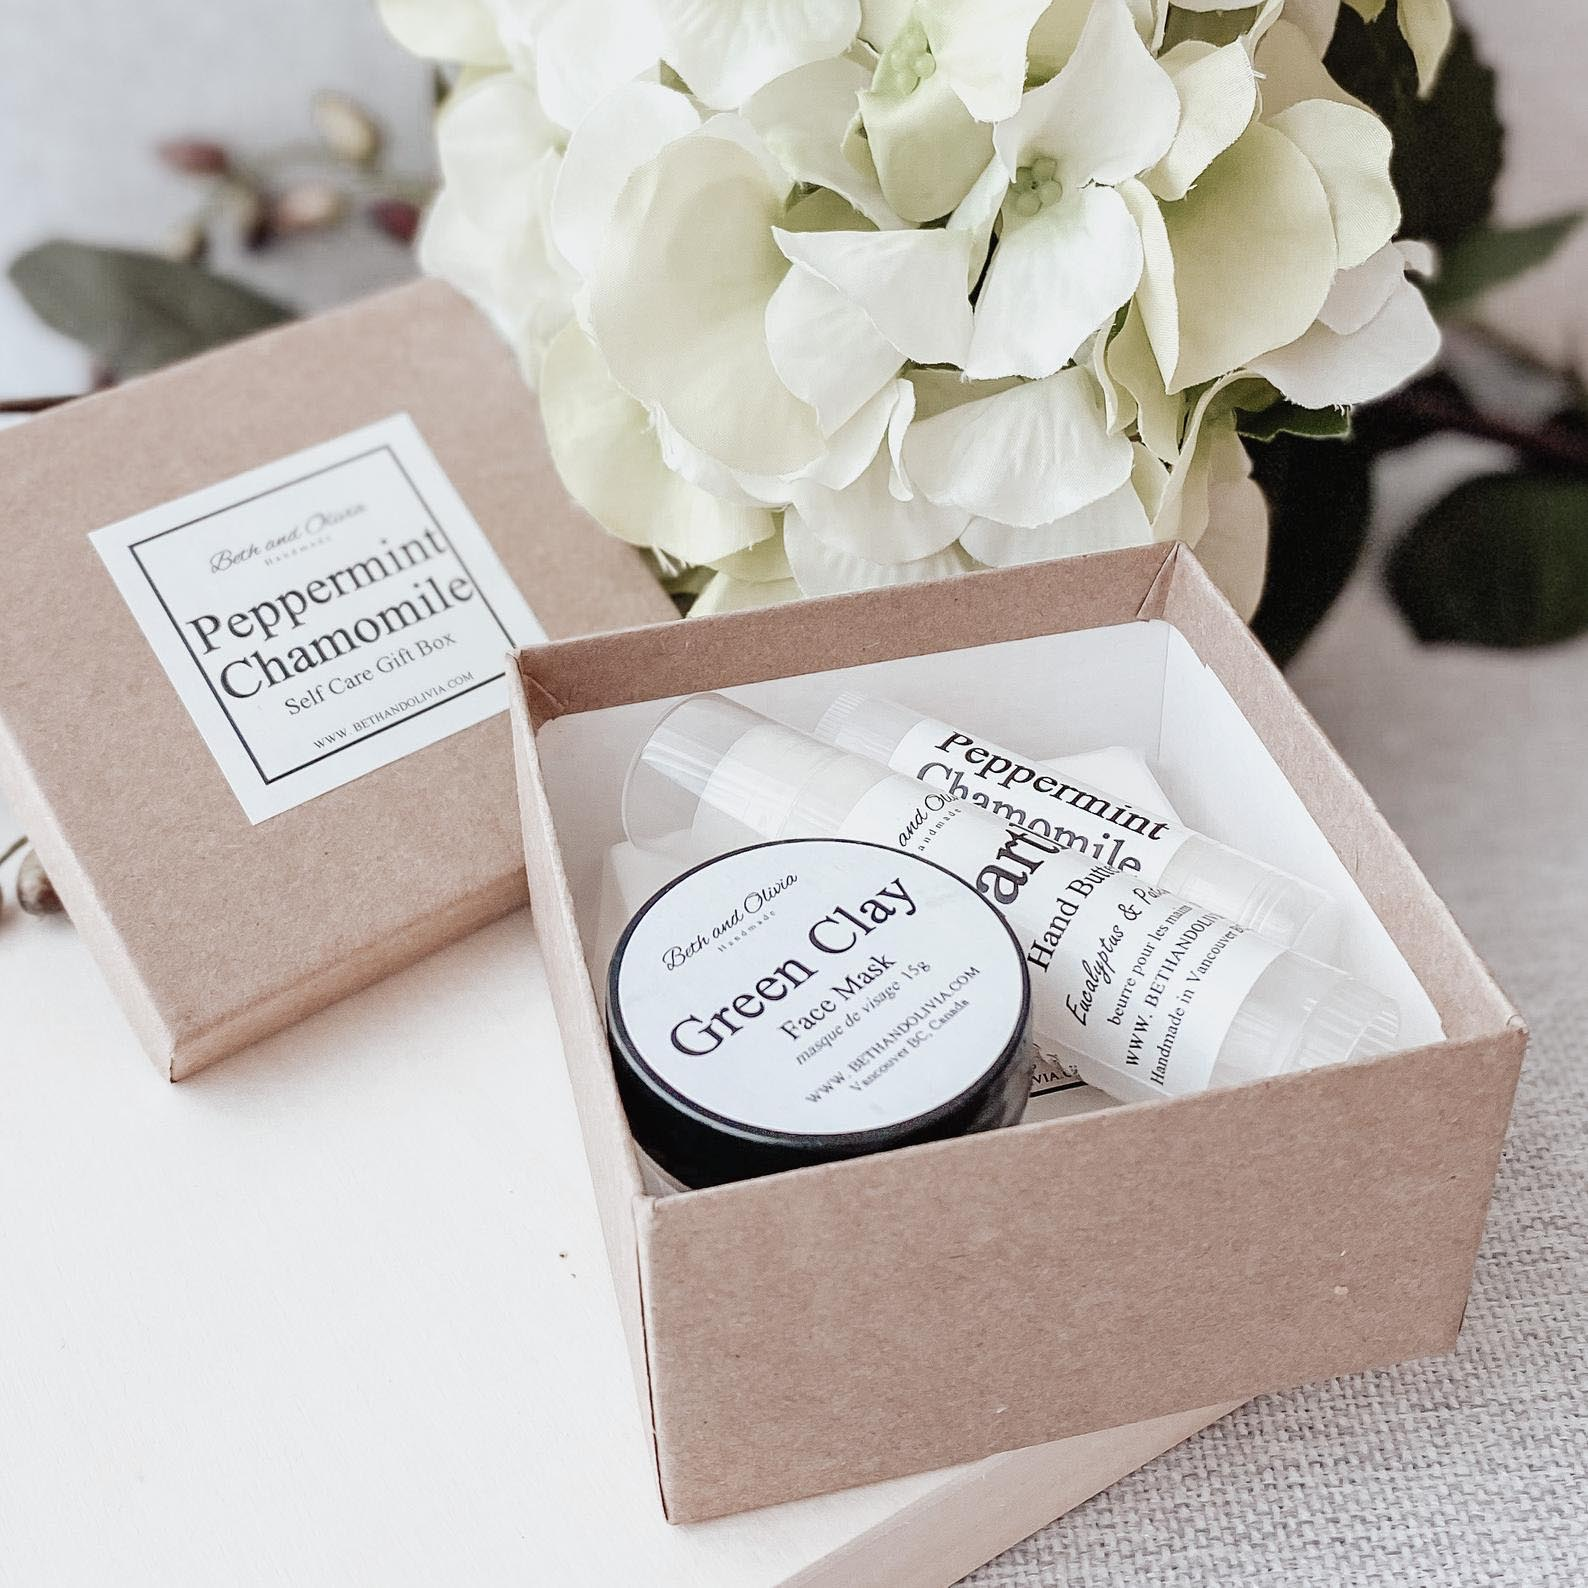 Gift Idea - Peppermint Chamomile Self Care Gift Set